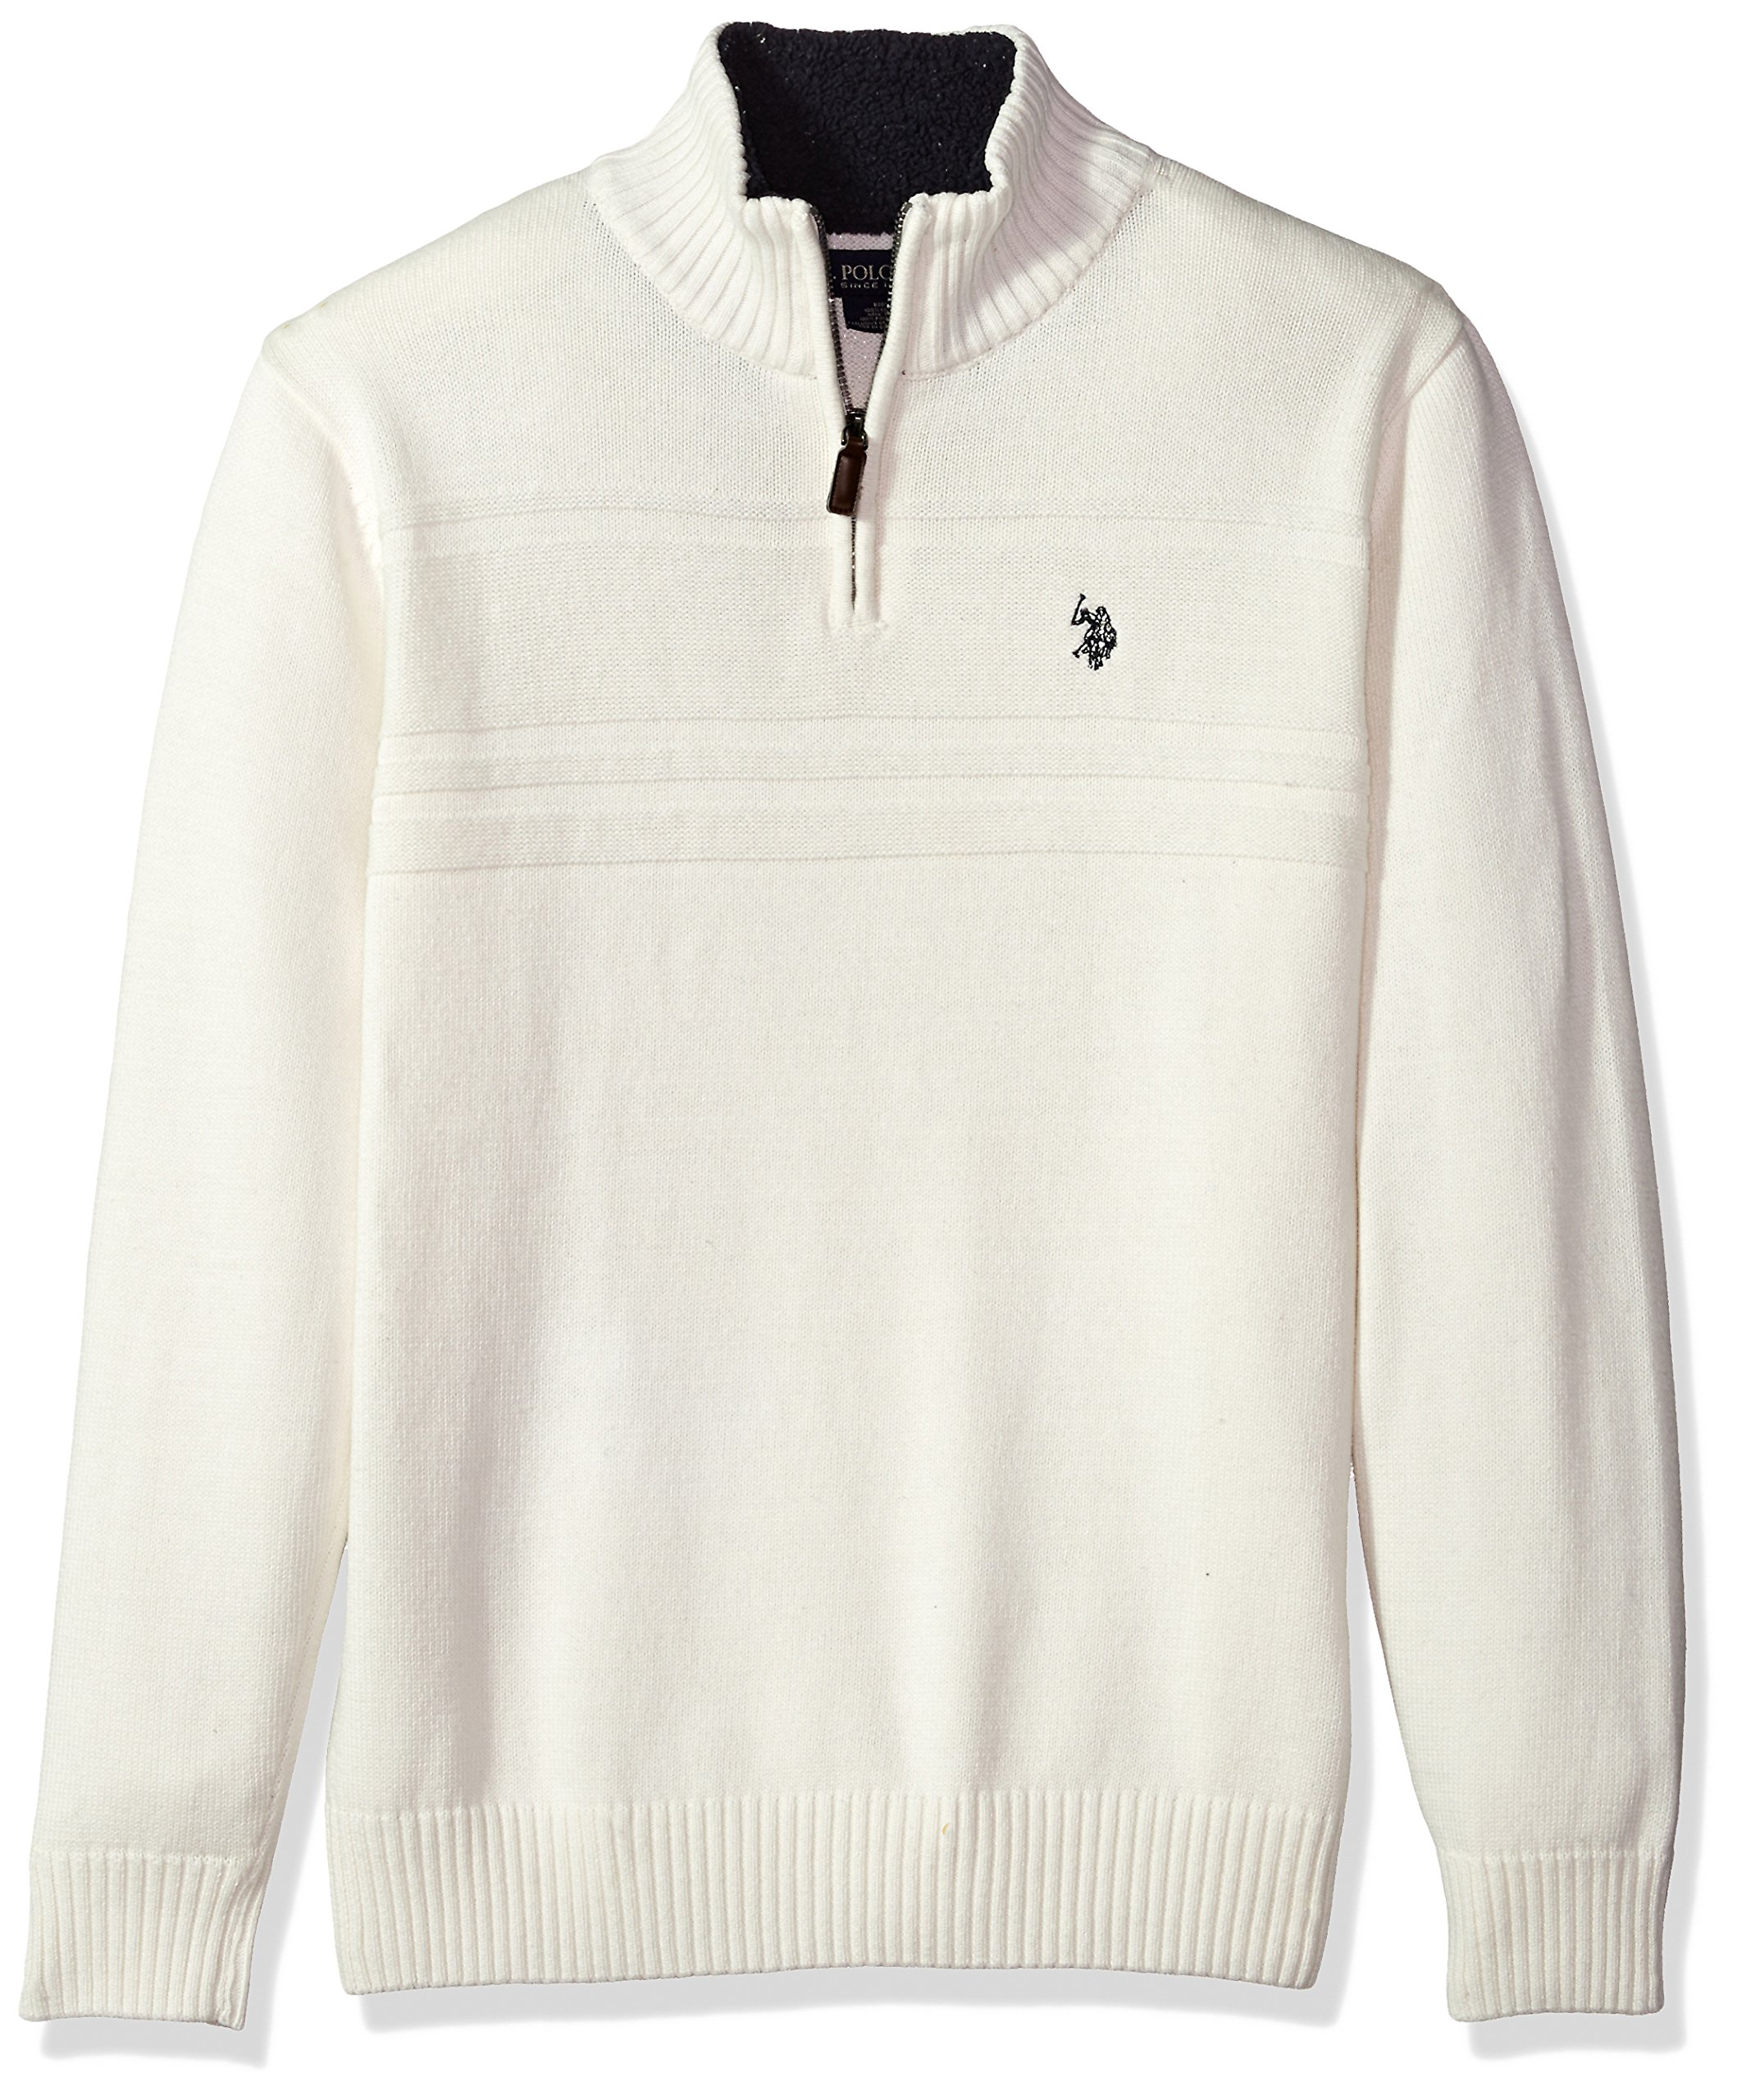 U.S. Polo Assn. Men's Solid Texture Chest Stripe 1/4 Sweater, Winter White, XX-Large by U.S. Polo Assn.